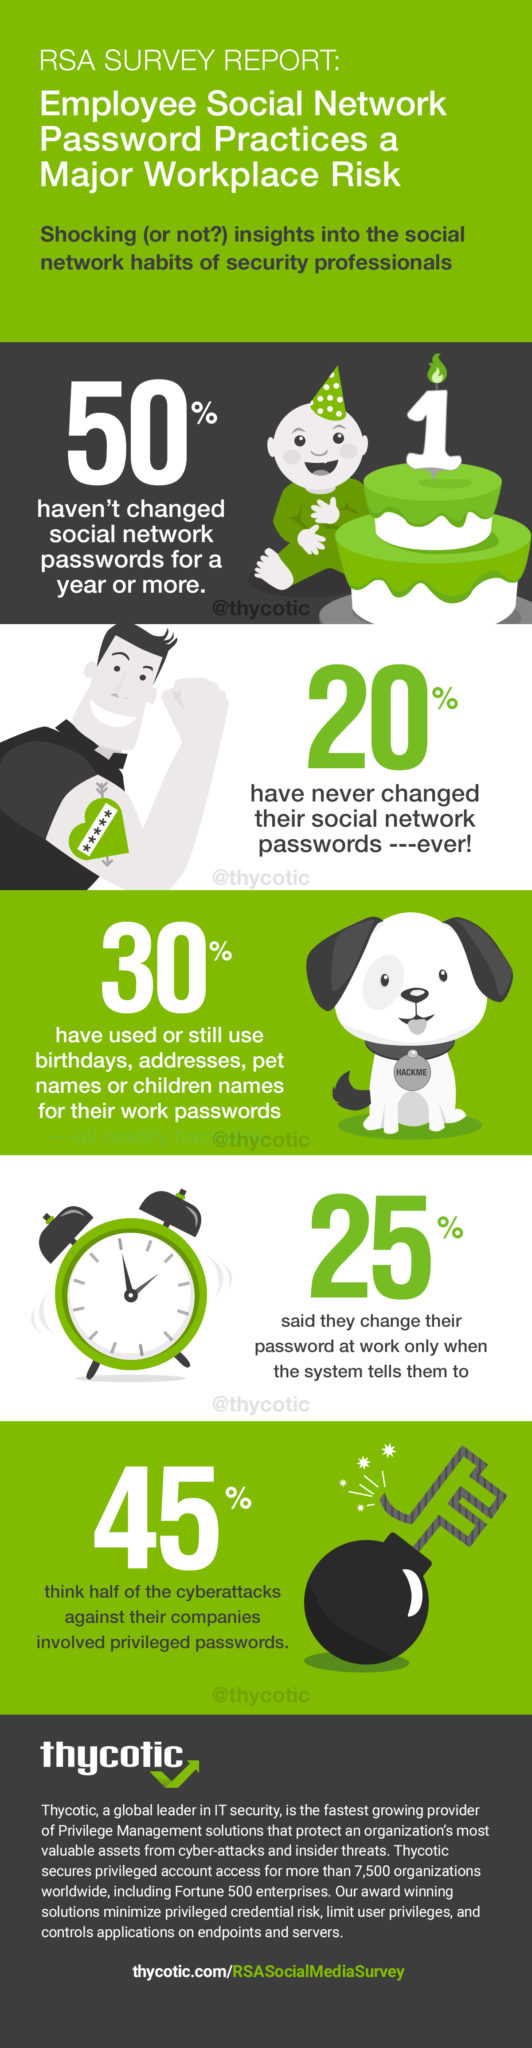 RSA Password Security Report - Employee Social Network Password Practices a Major Workplace Risk